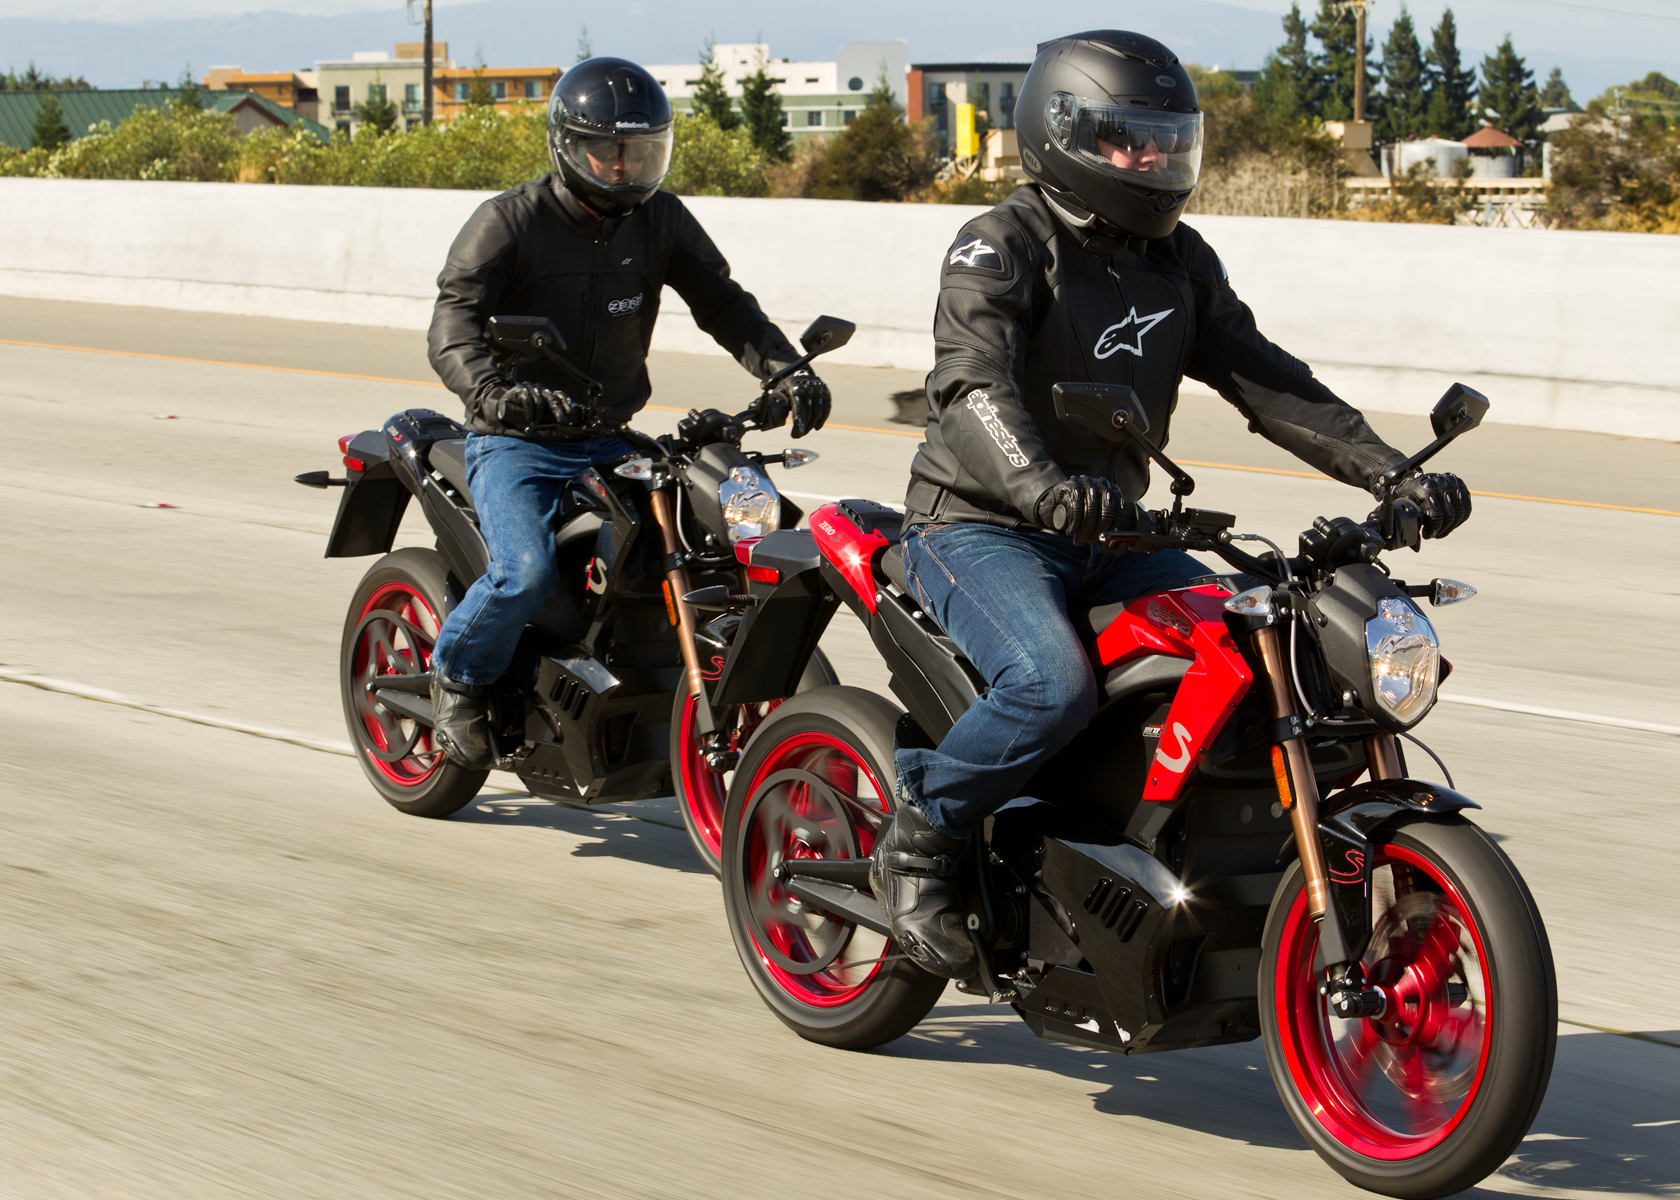 2012 Zero S Electric Motorcycle: Pair, Cruising in the City